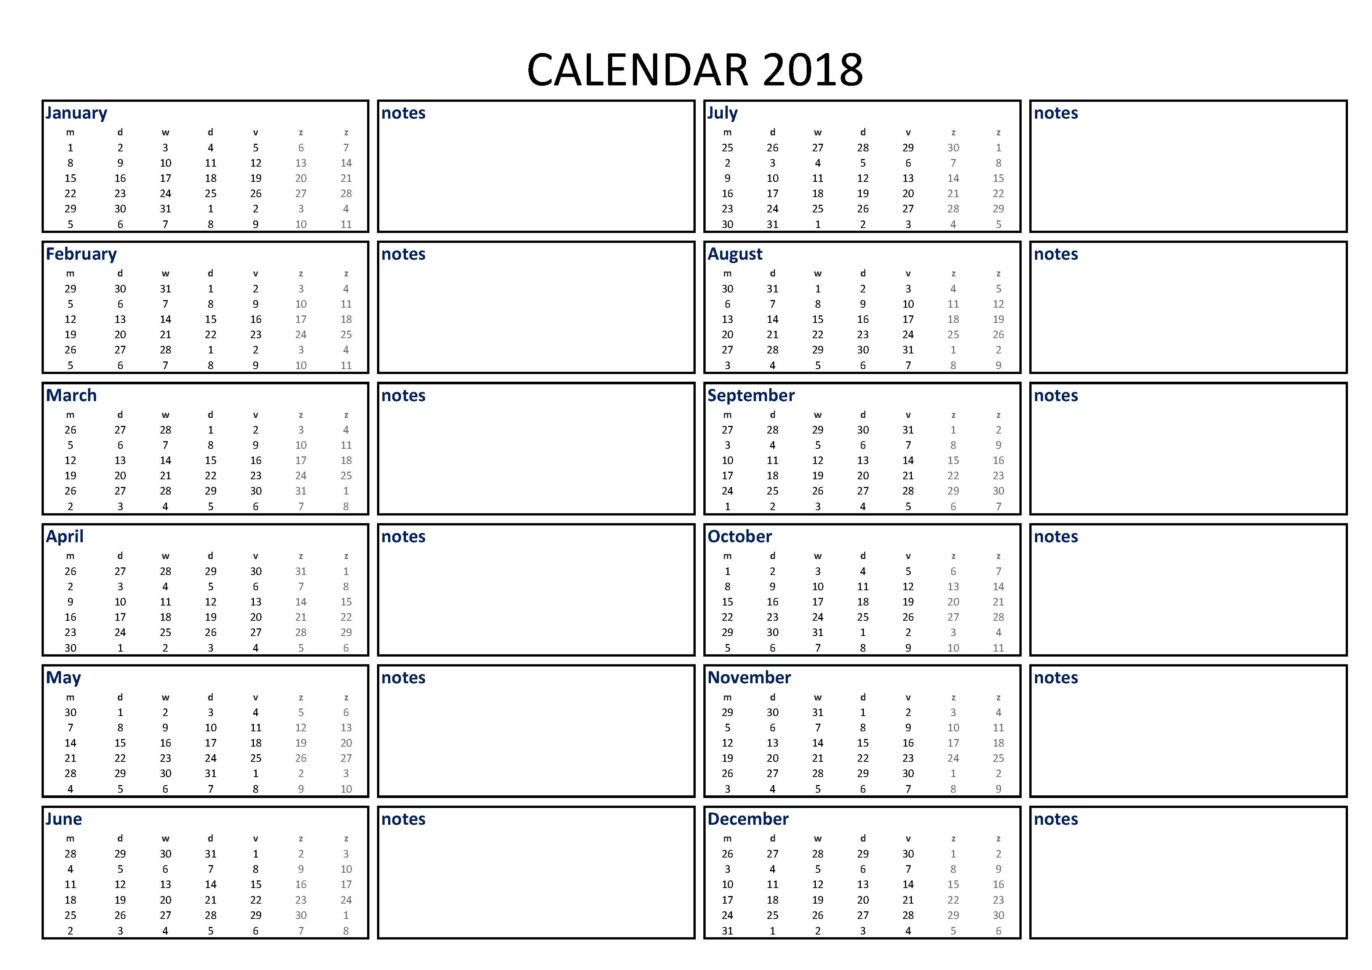 Holiday Spreadsheet Template 2018 Regarding Free 2018 Calendar Excel Template A3 With Notes  Templates At